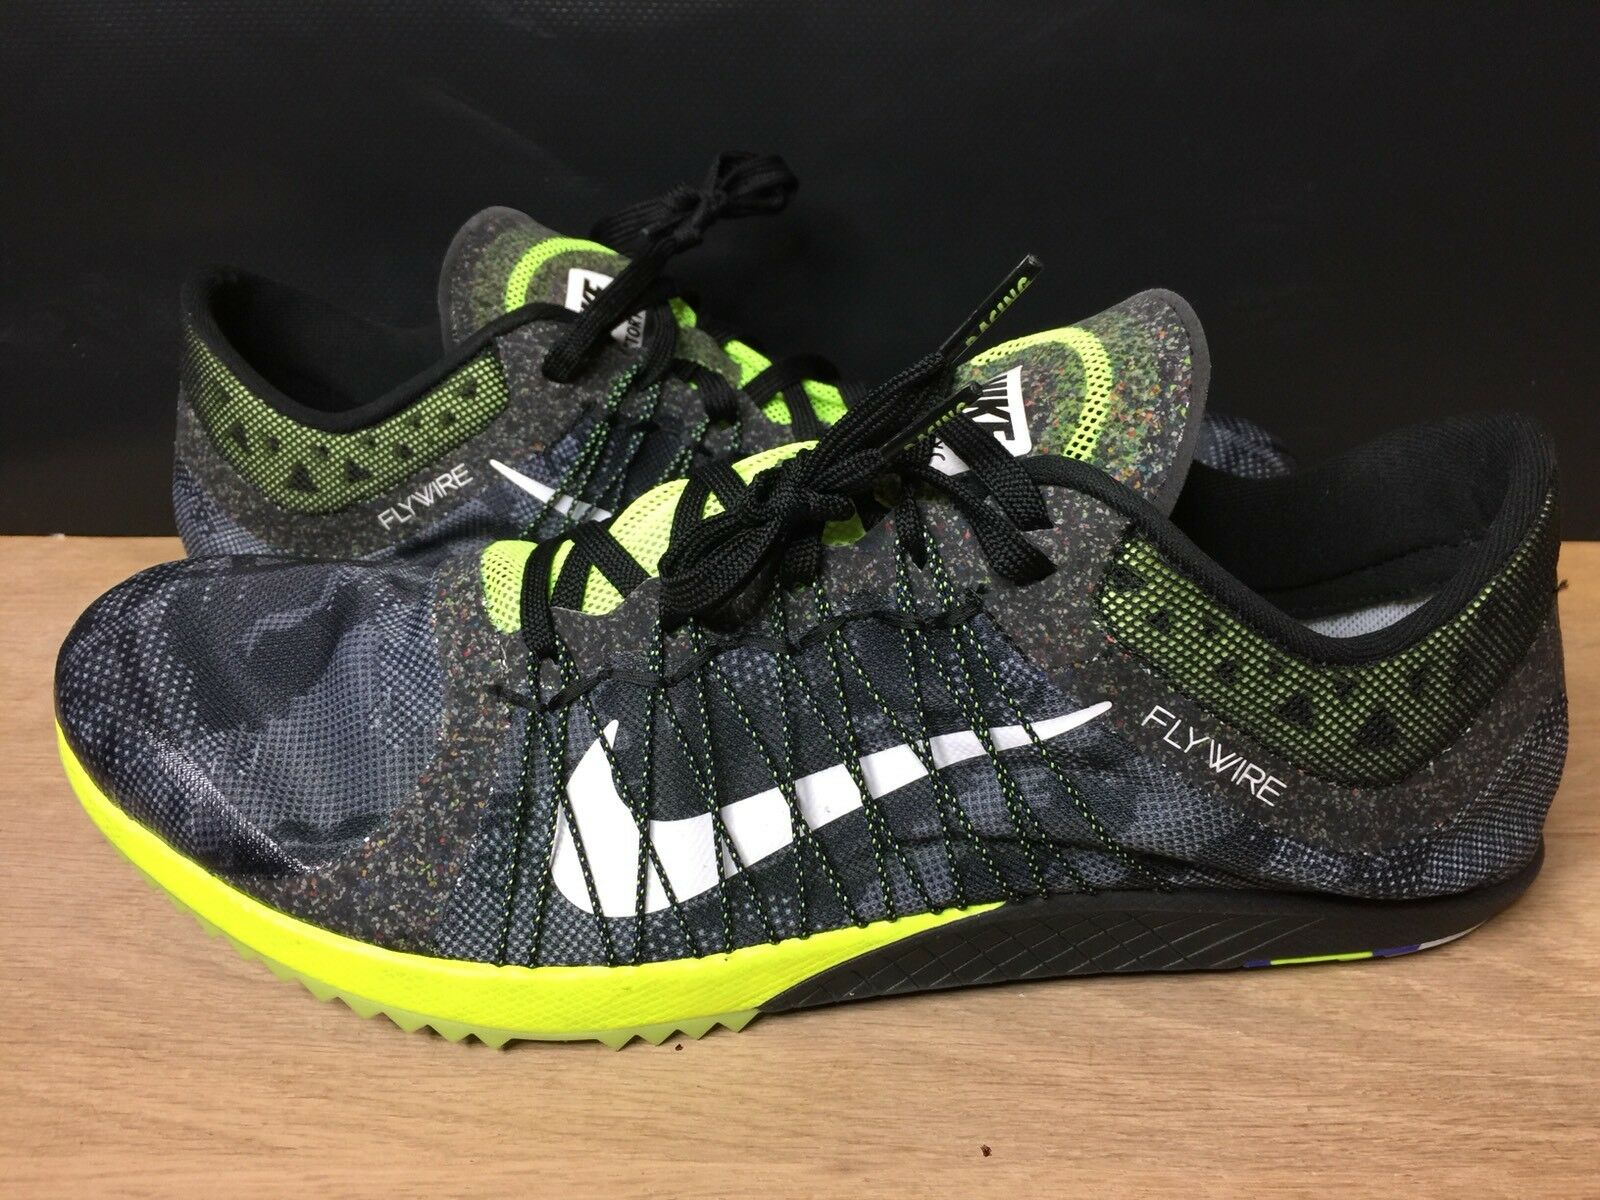 separation shoes fd147 33fbb Nike Zoom Victory XC Track and feild shoes shoes shoes Mens 654693-017 Sz 13